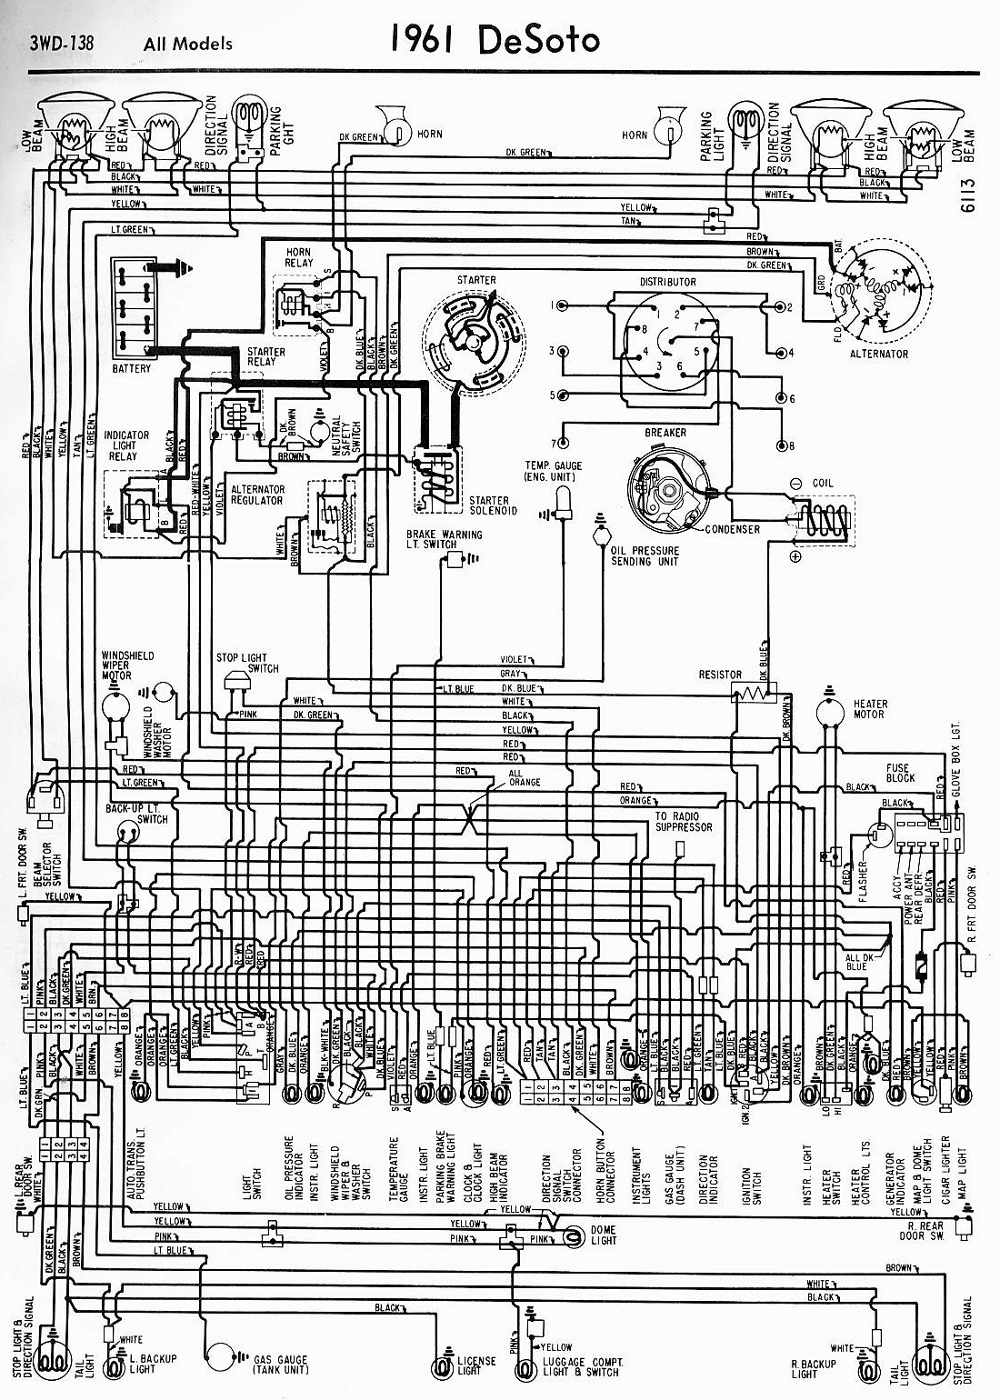 wiring-diagrams-of-1961-desoto-all-models Japanese Car Wiring Diagrams on